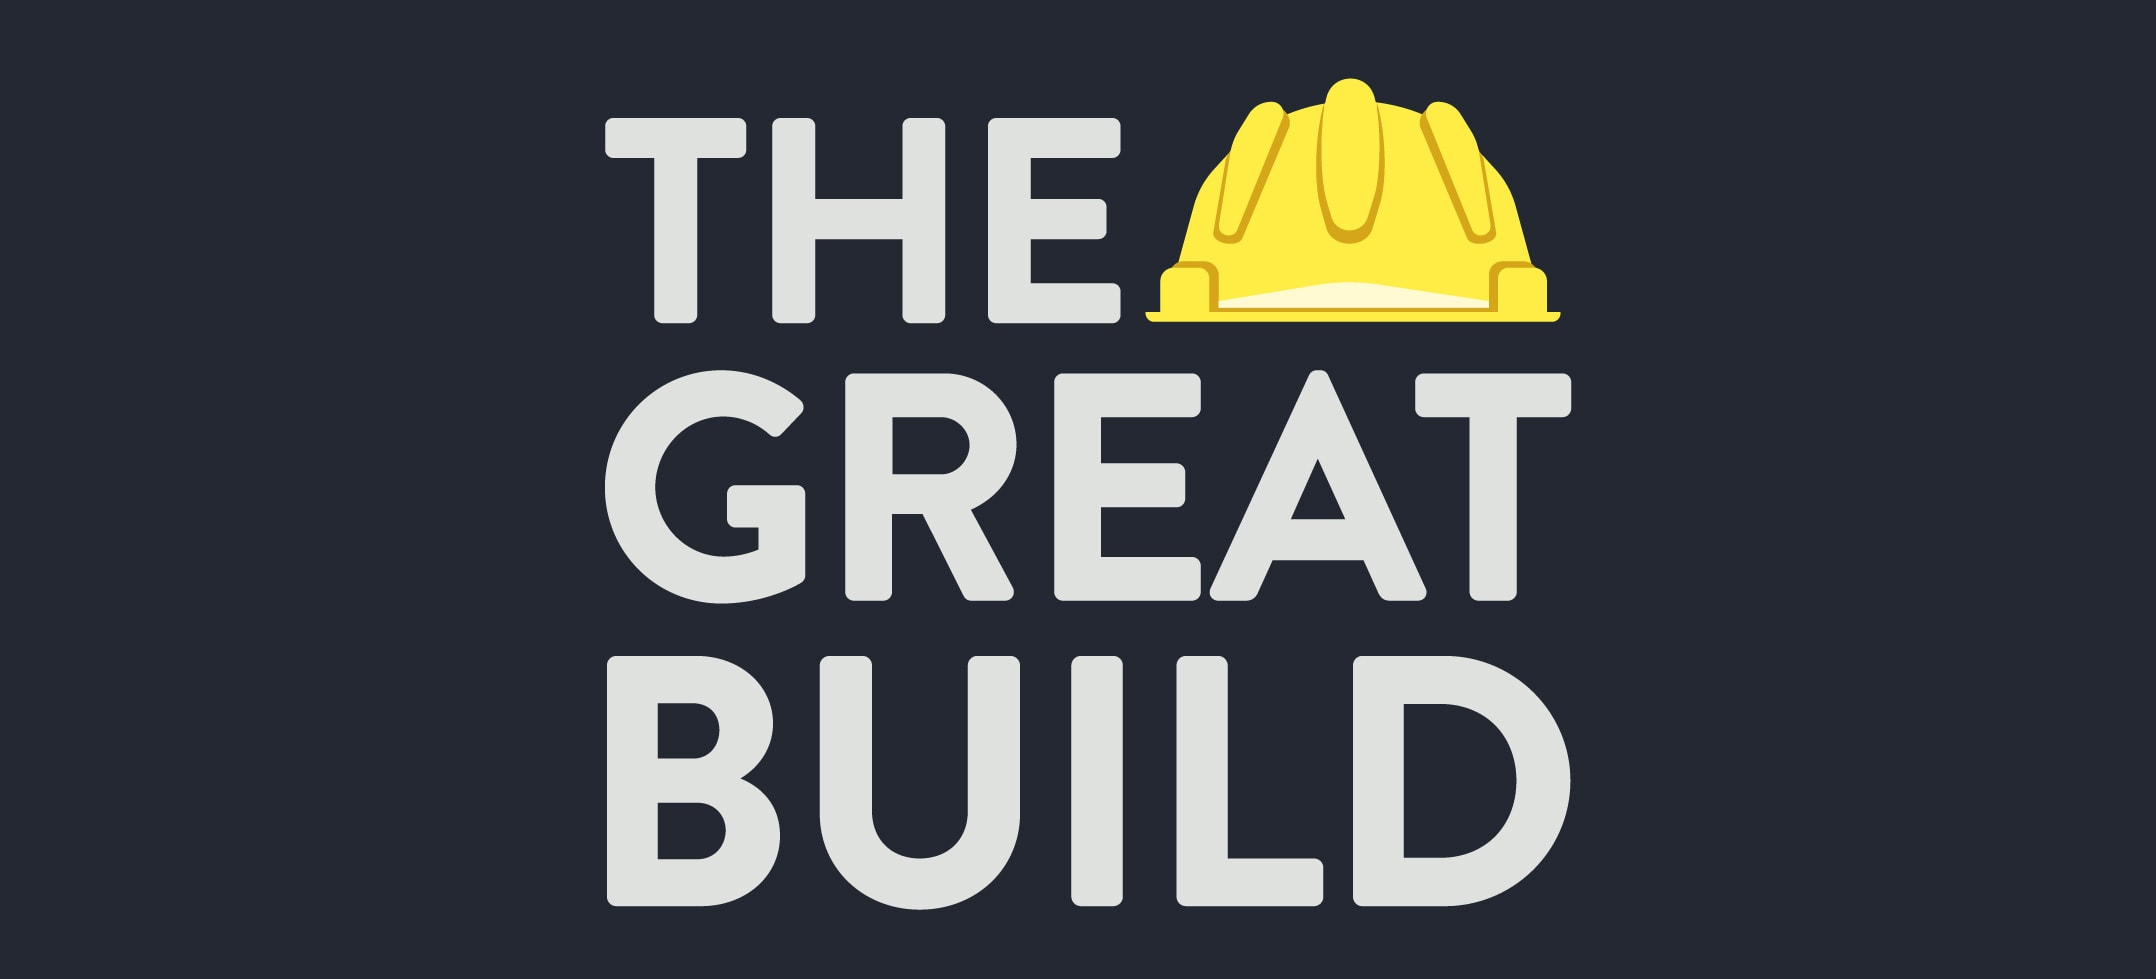 #TheGreatBuild – Behind The Scenes Of A 6 Month Old Ecommerce Business